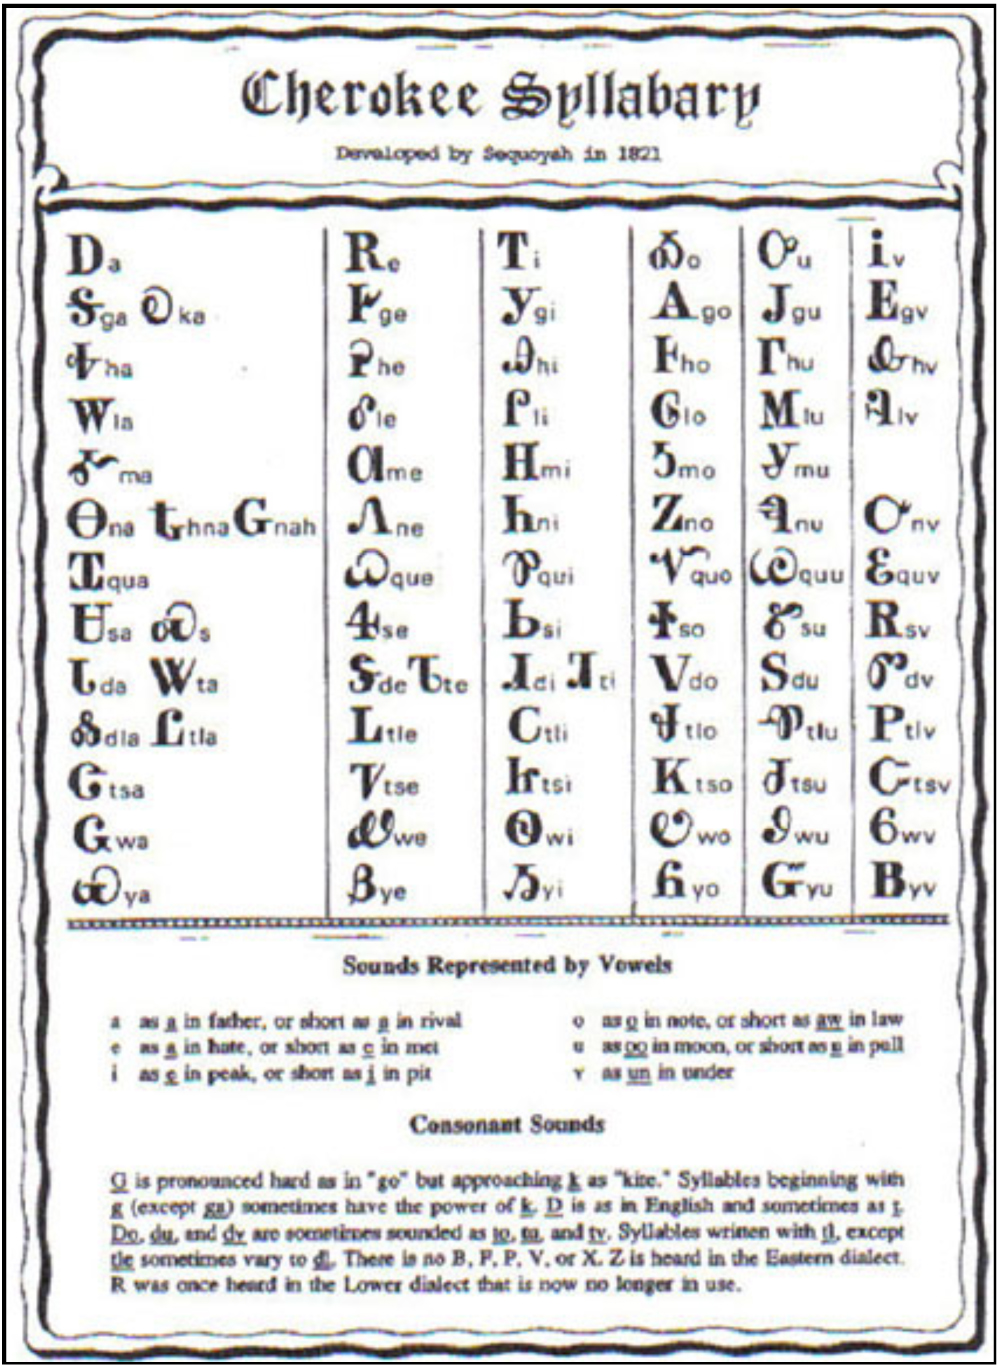 Cherokee Syllabary for Tsalagi language, by Chief Sequoyah